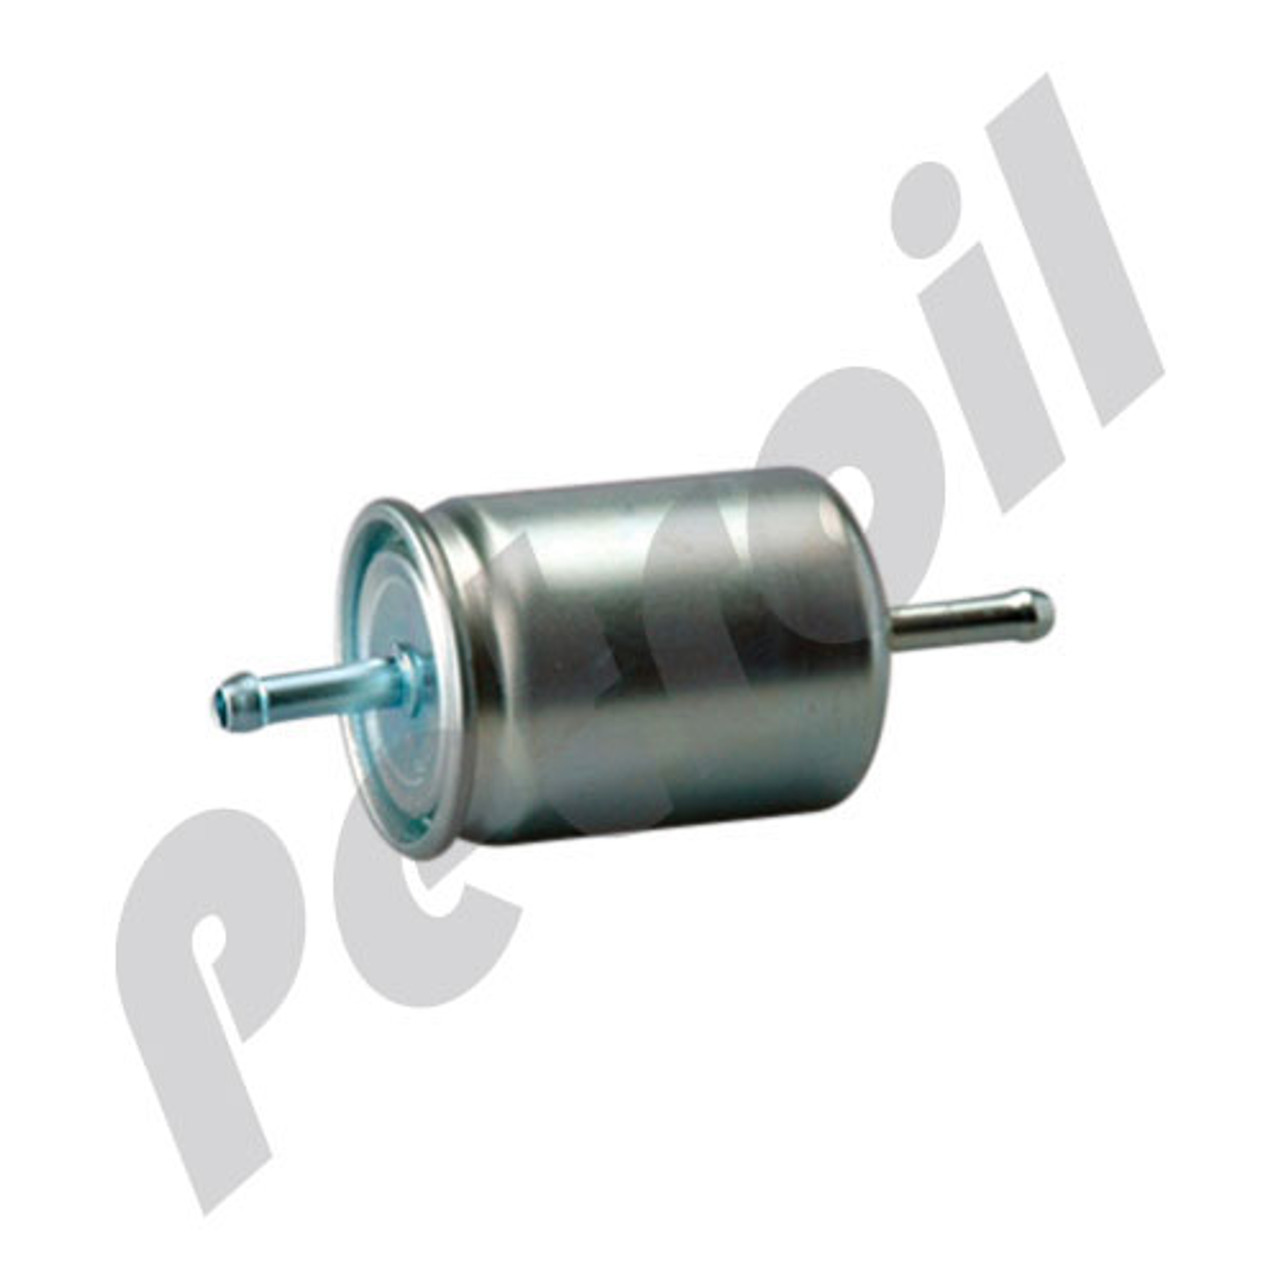 Case of 6 Complete In-Line Wix 33310 Fuel Filter